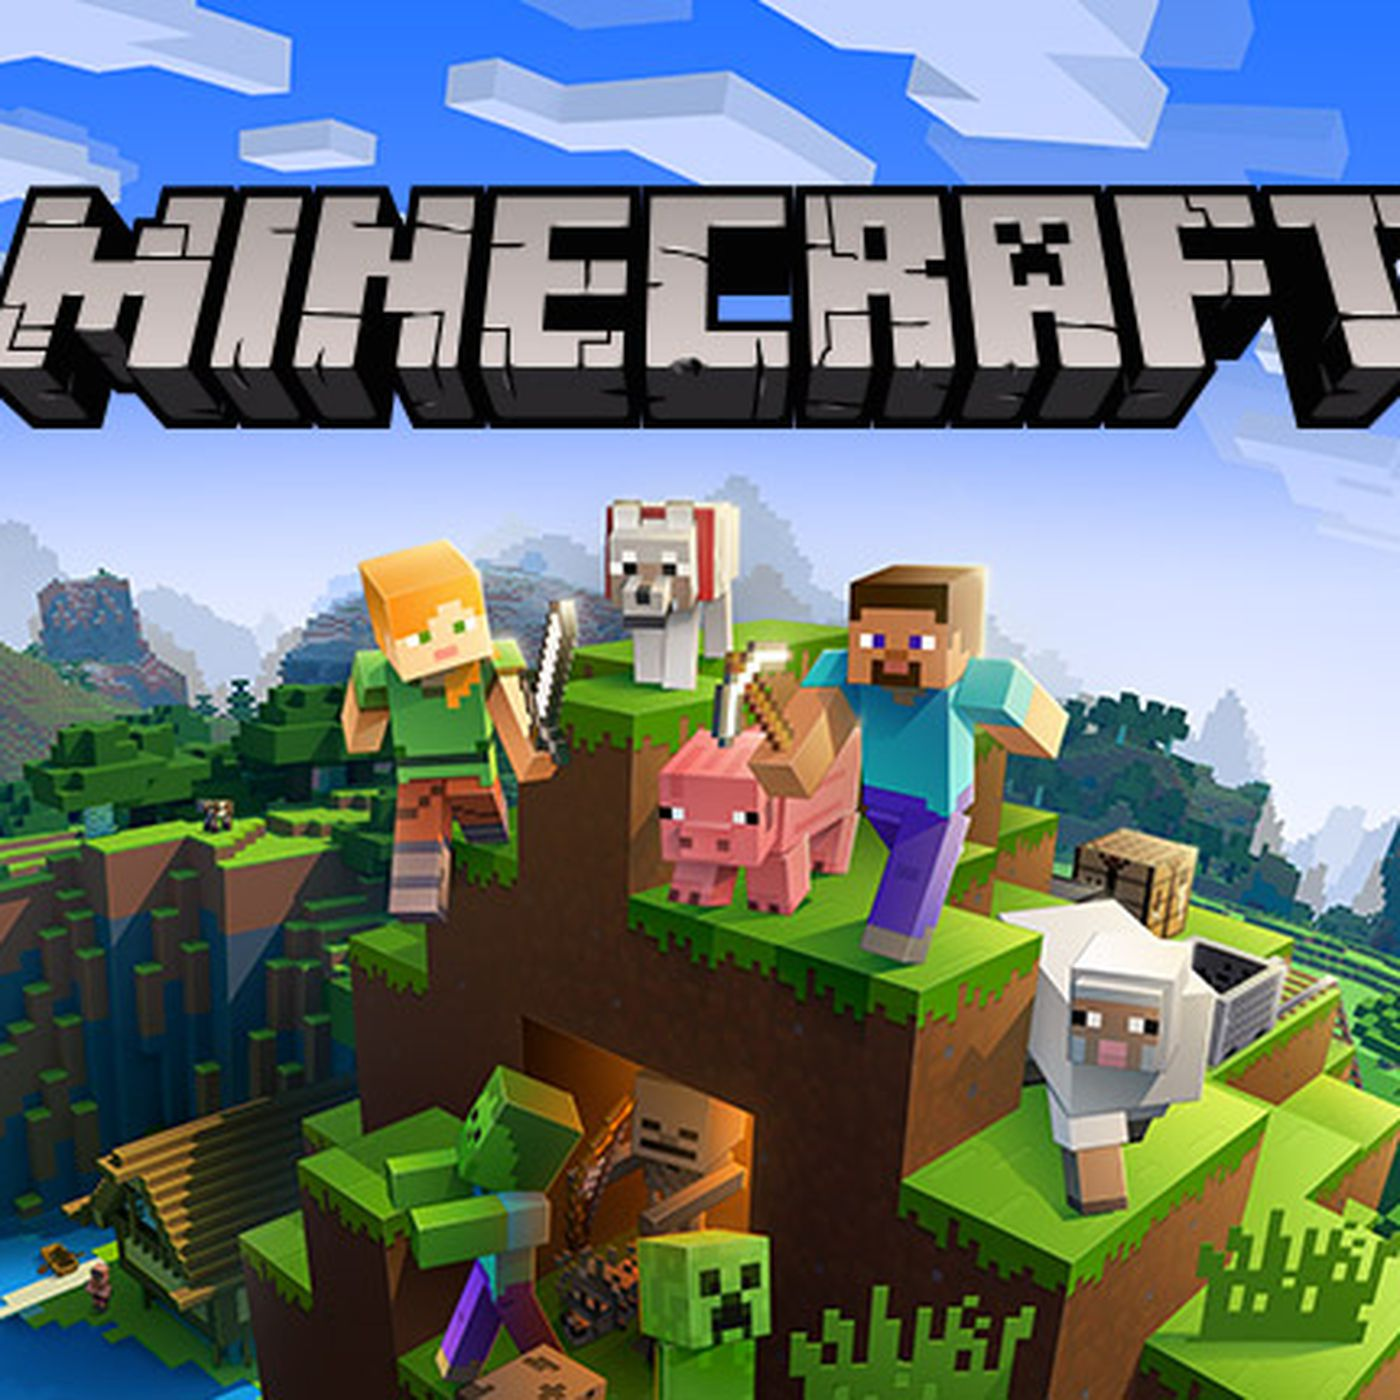 Minecraft Is Finally Getting Ps4 Cross Play Support The Verge